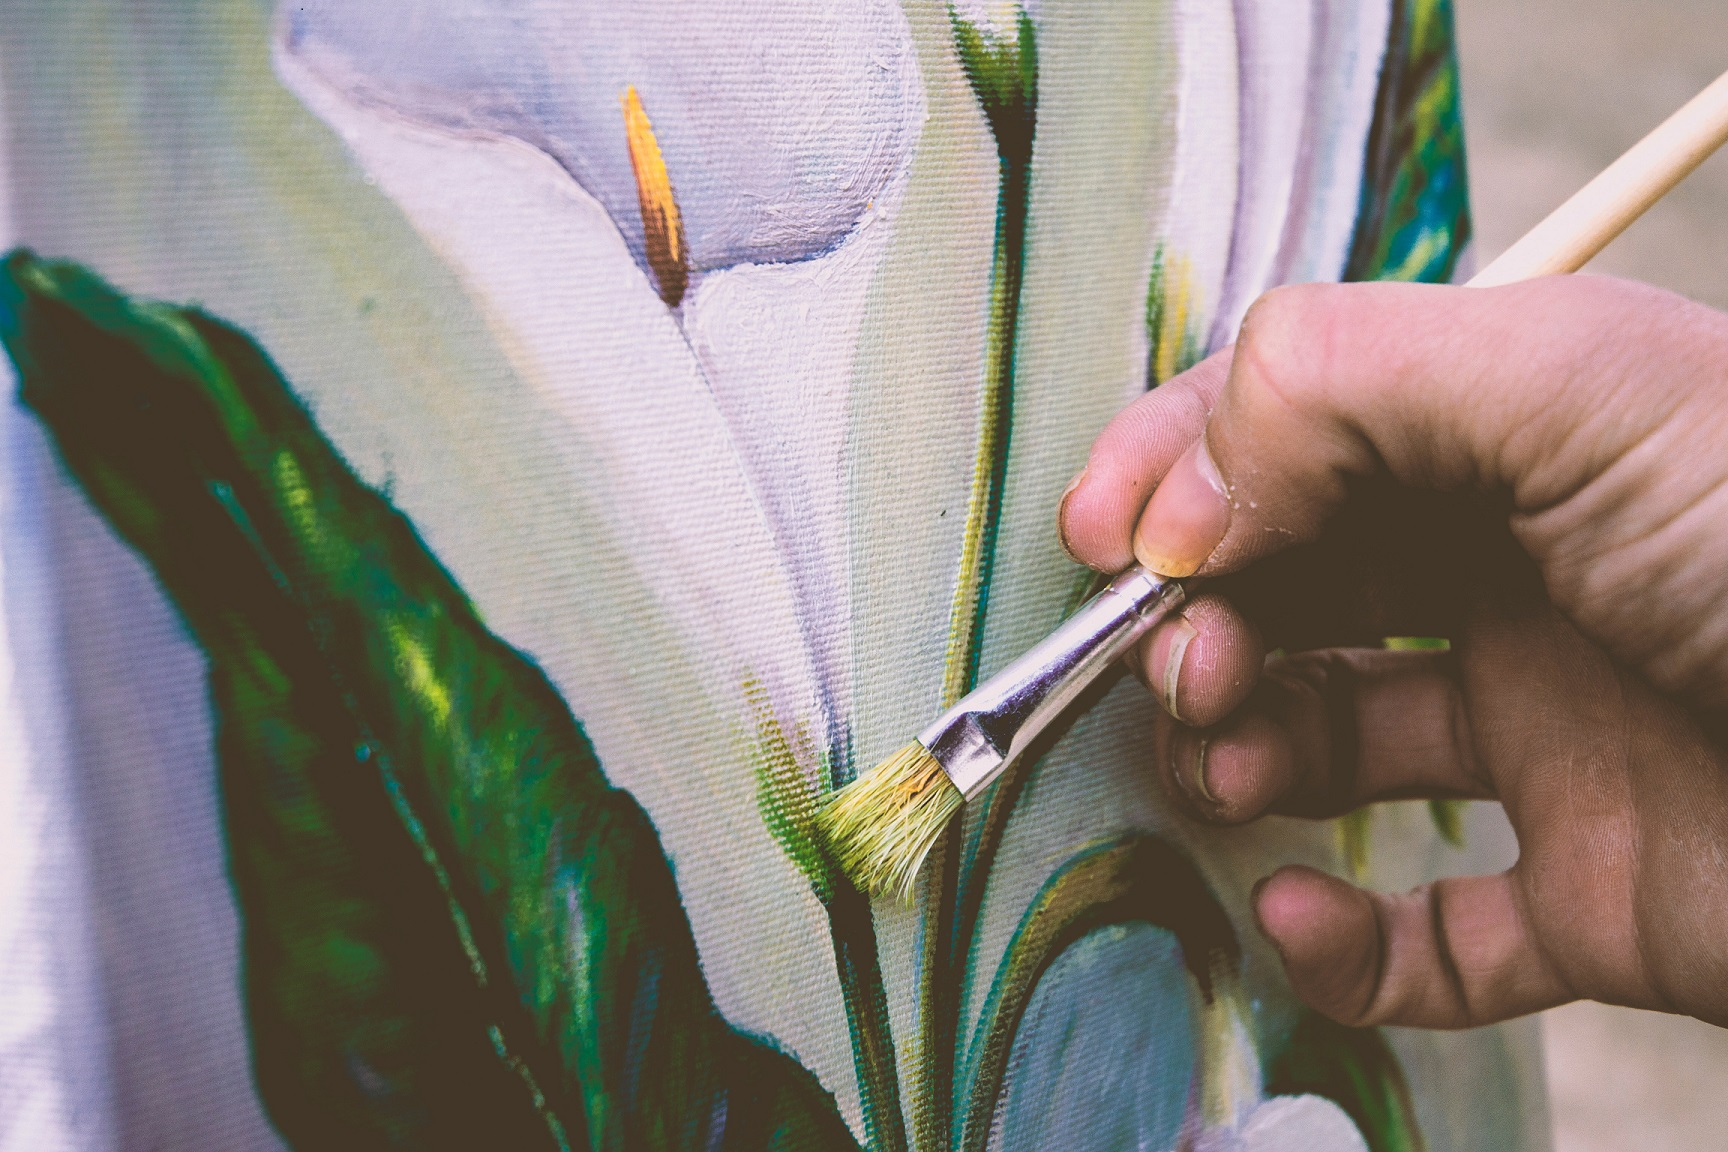 artist's finishing touches